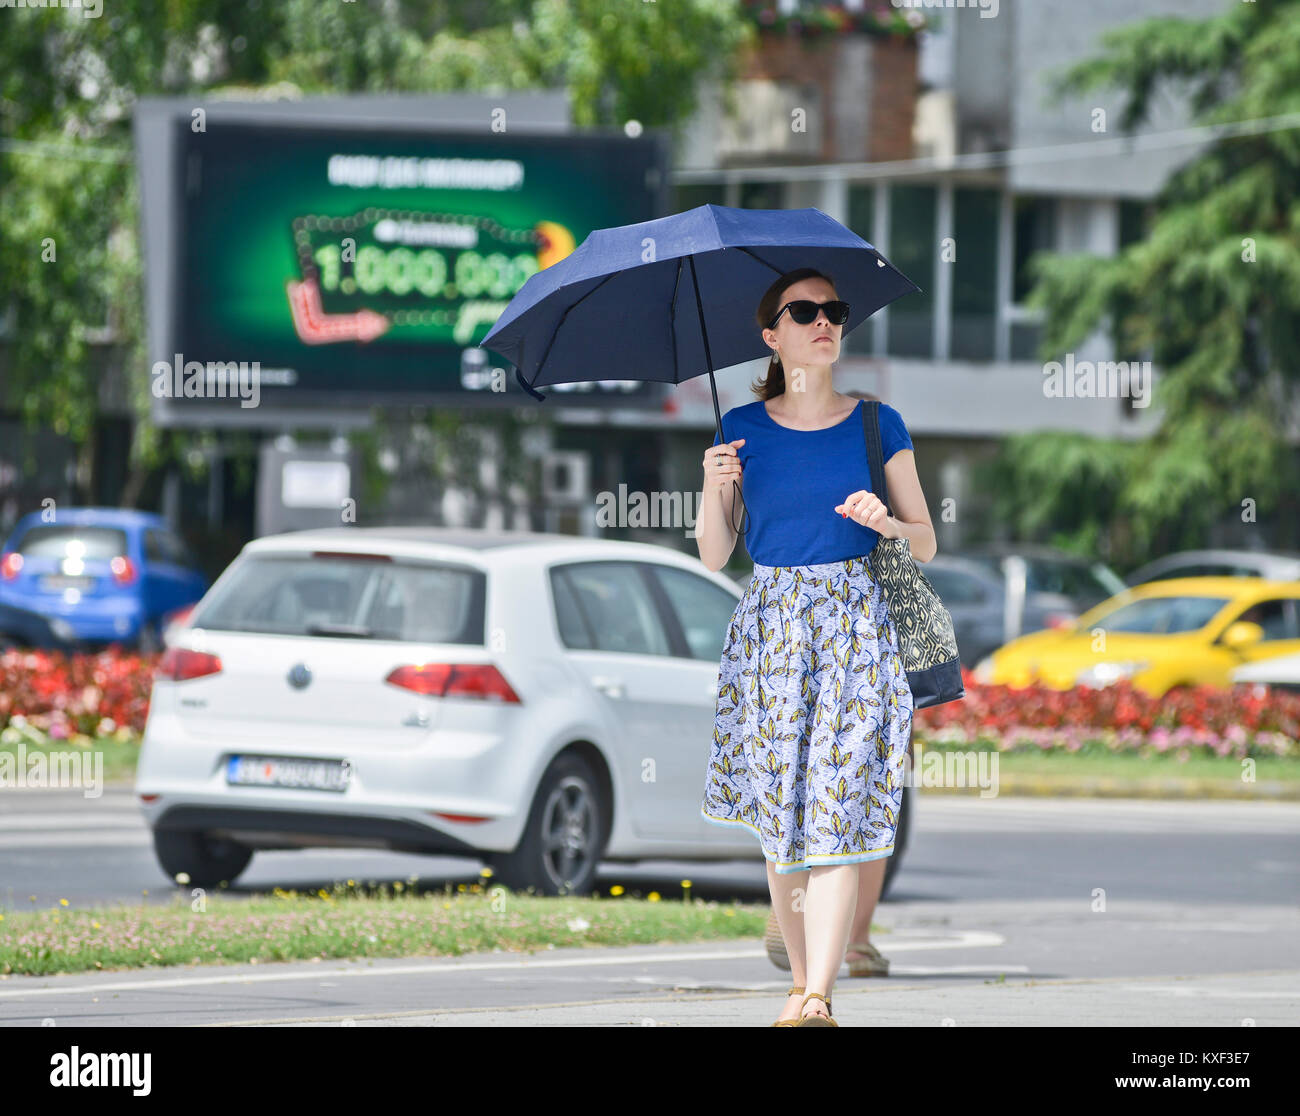 A woman walking under the sun with umbrella and sunglasses, Skopje, Macedonia - Stock Image